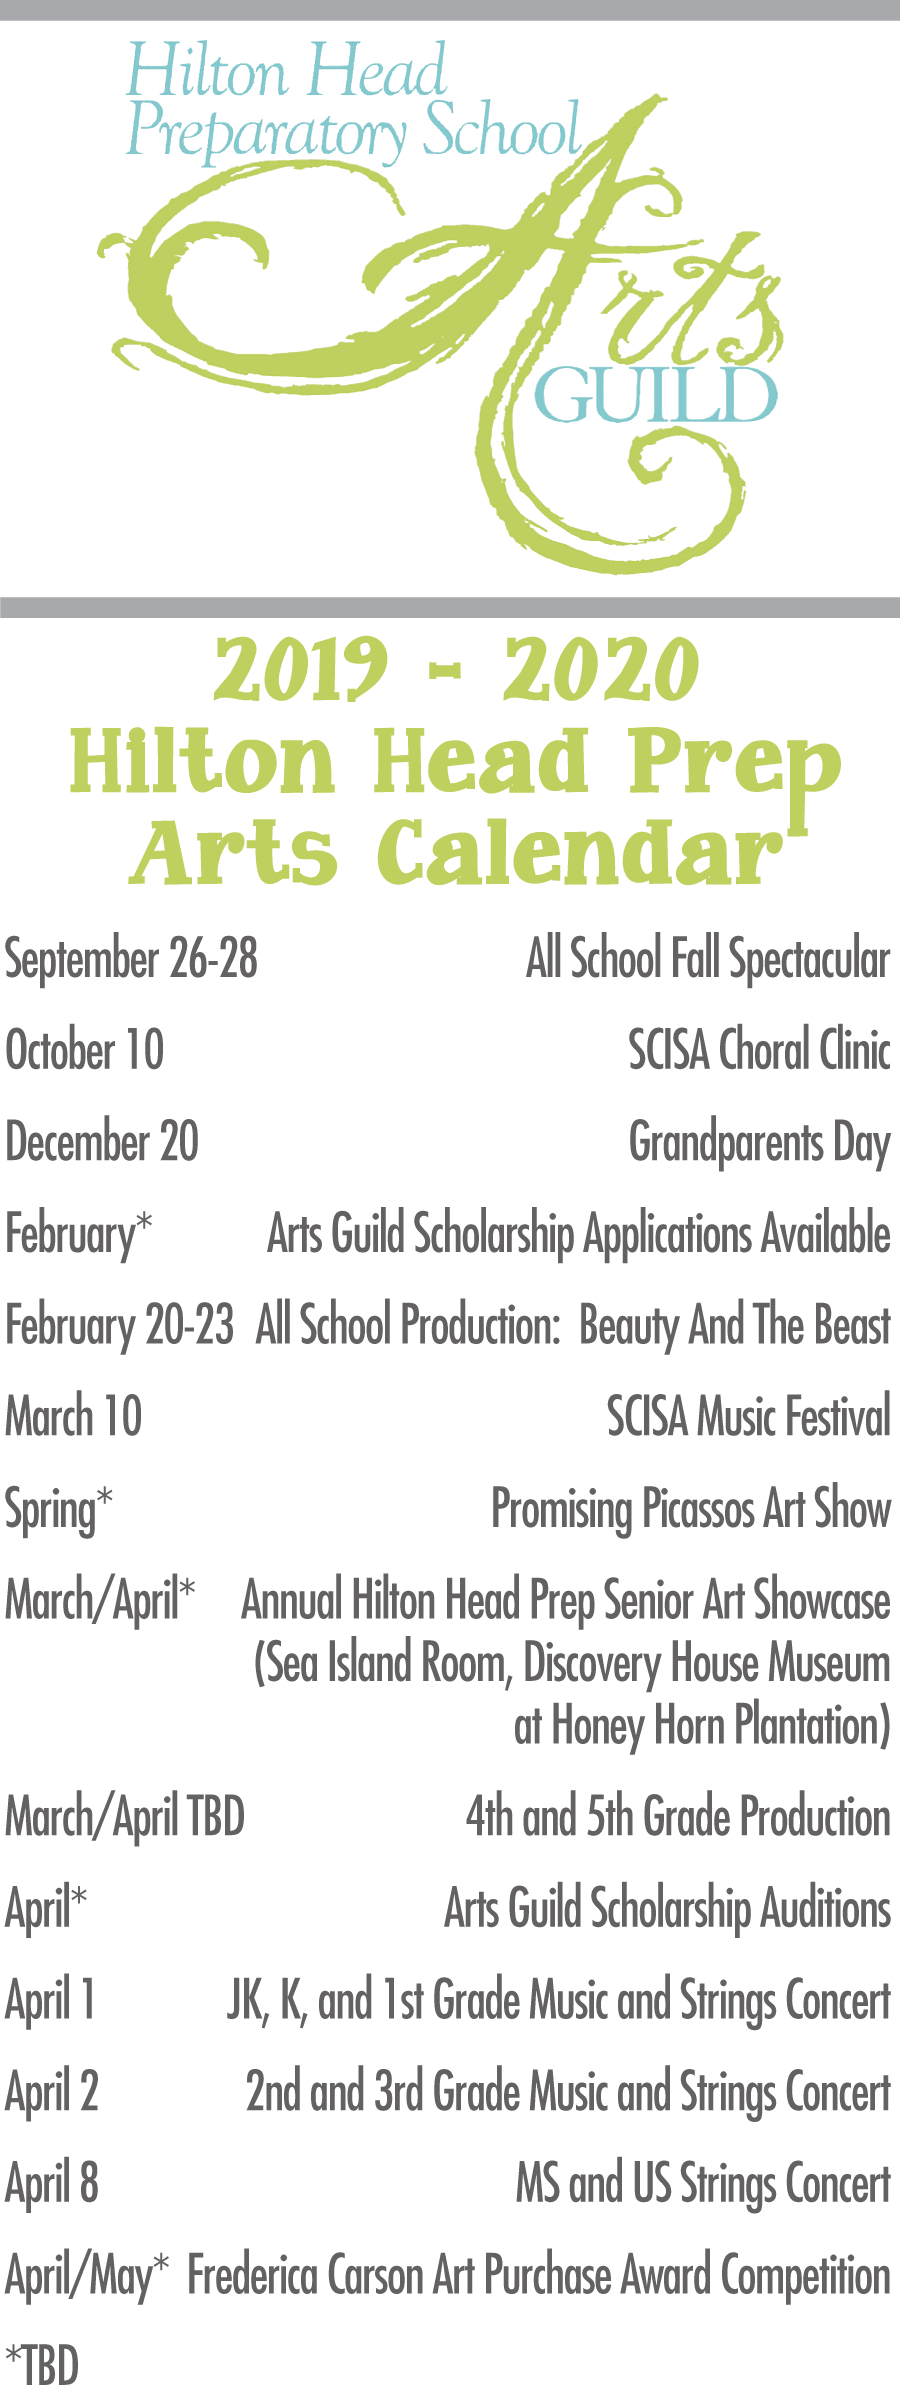 Calendar - Hilton Head Preparatory School Regarding Calendar 2021 For Hilton Head Sc